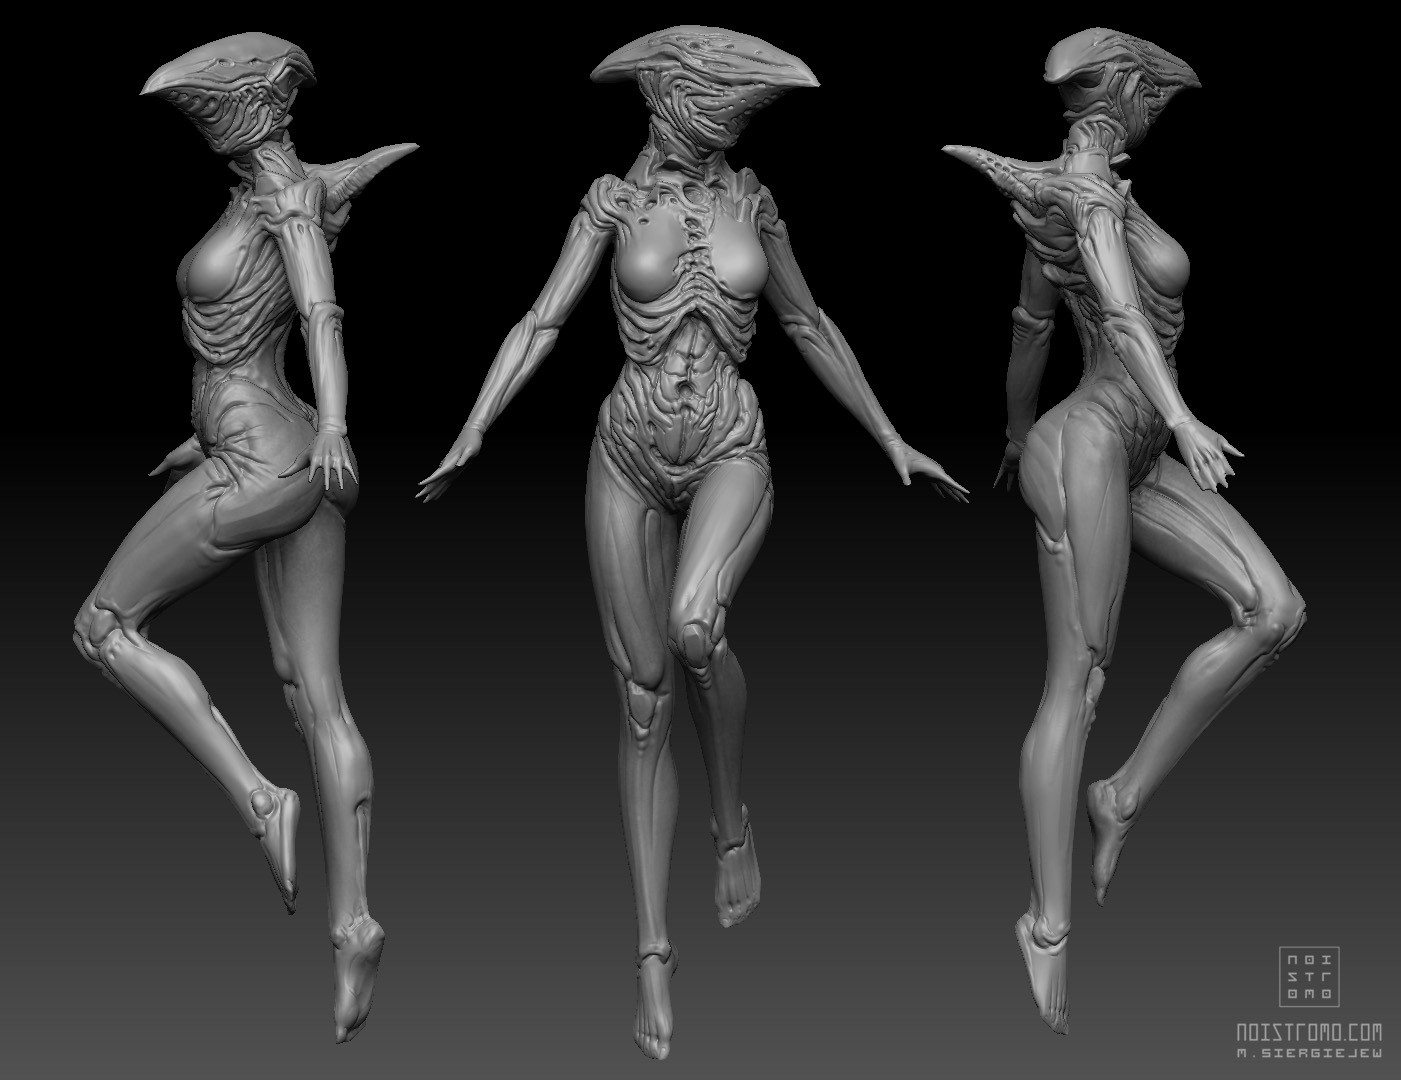 Marius siergiejew zbrush document 001